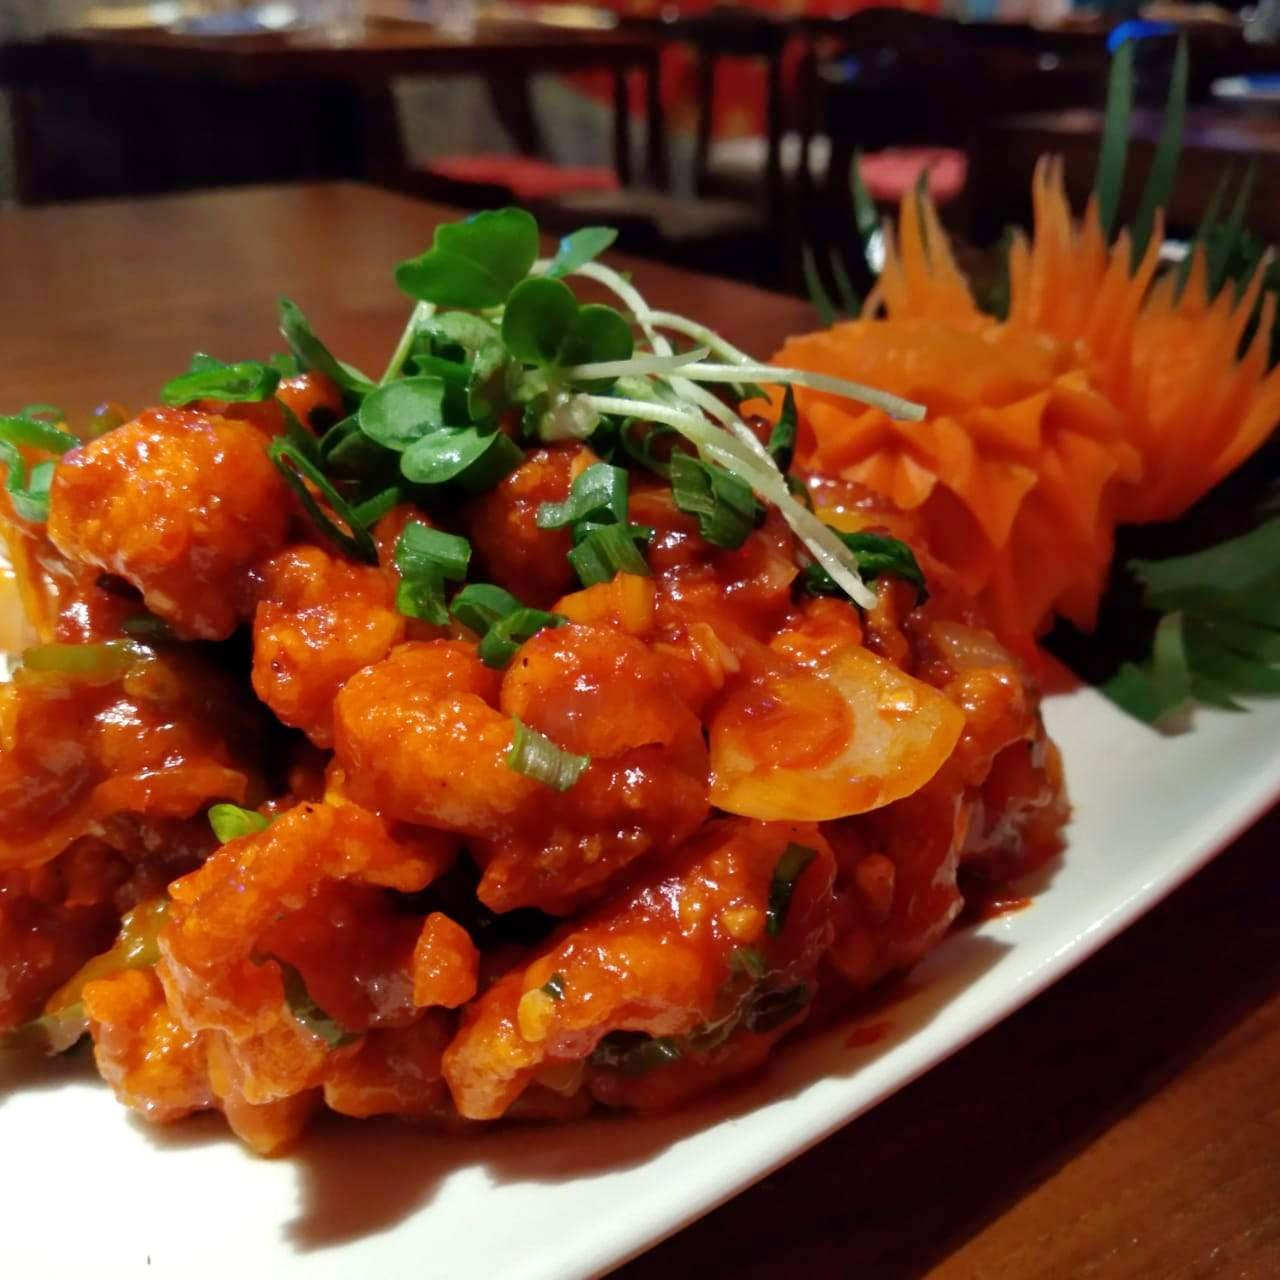 Looking For Some Amazing Chinese Food? Head To Khow Chow!